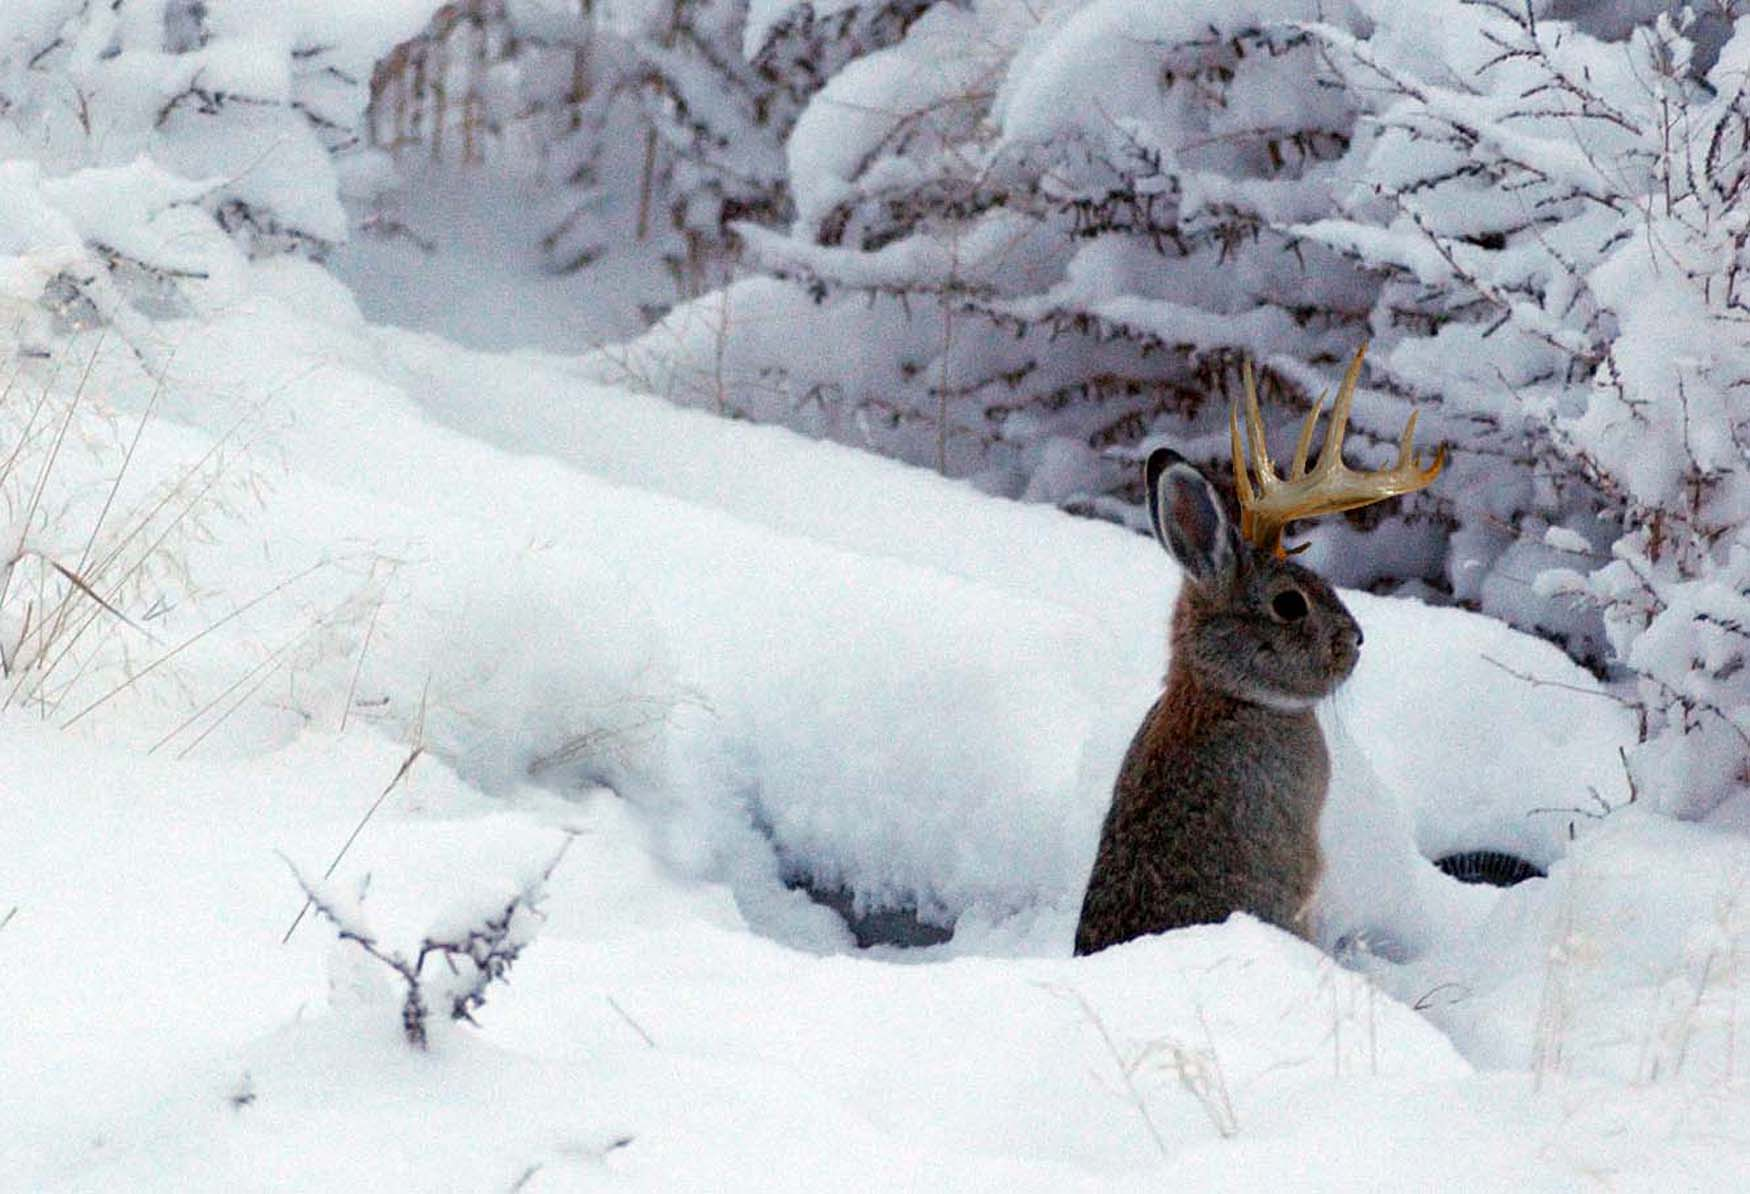 Petition Seeks Return Of Yellowstone Jackalope To Public